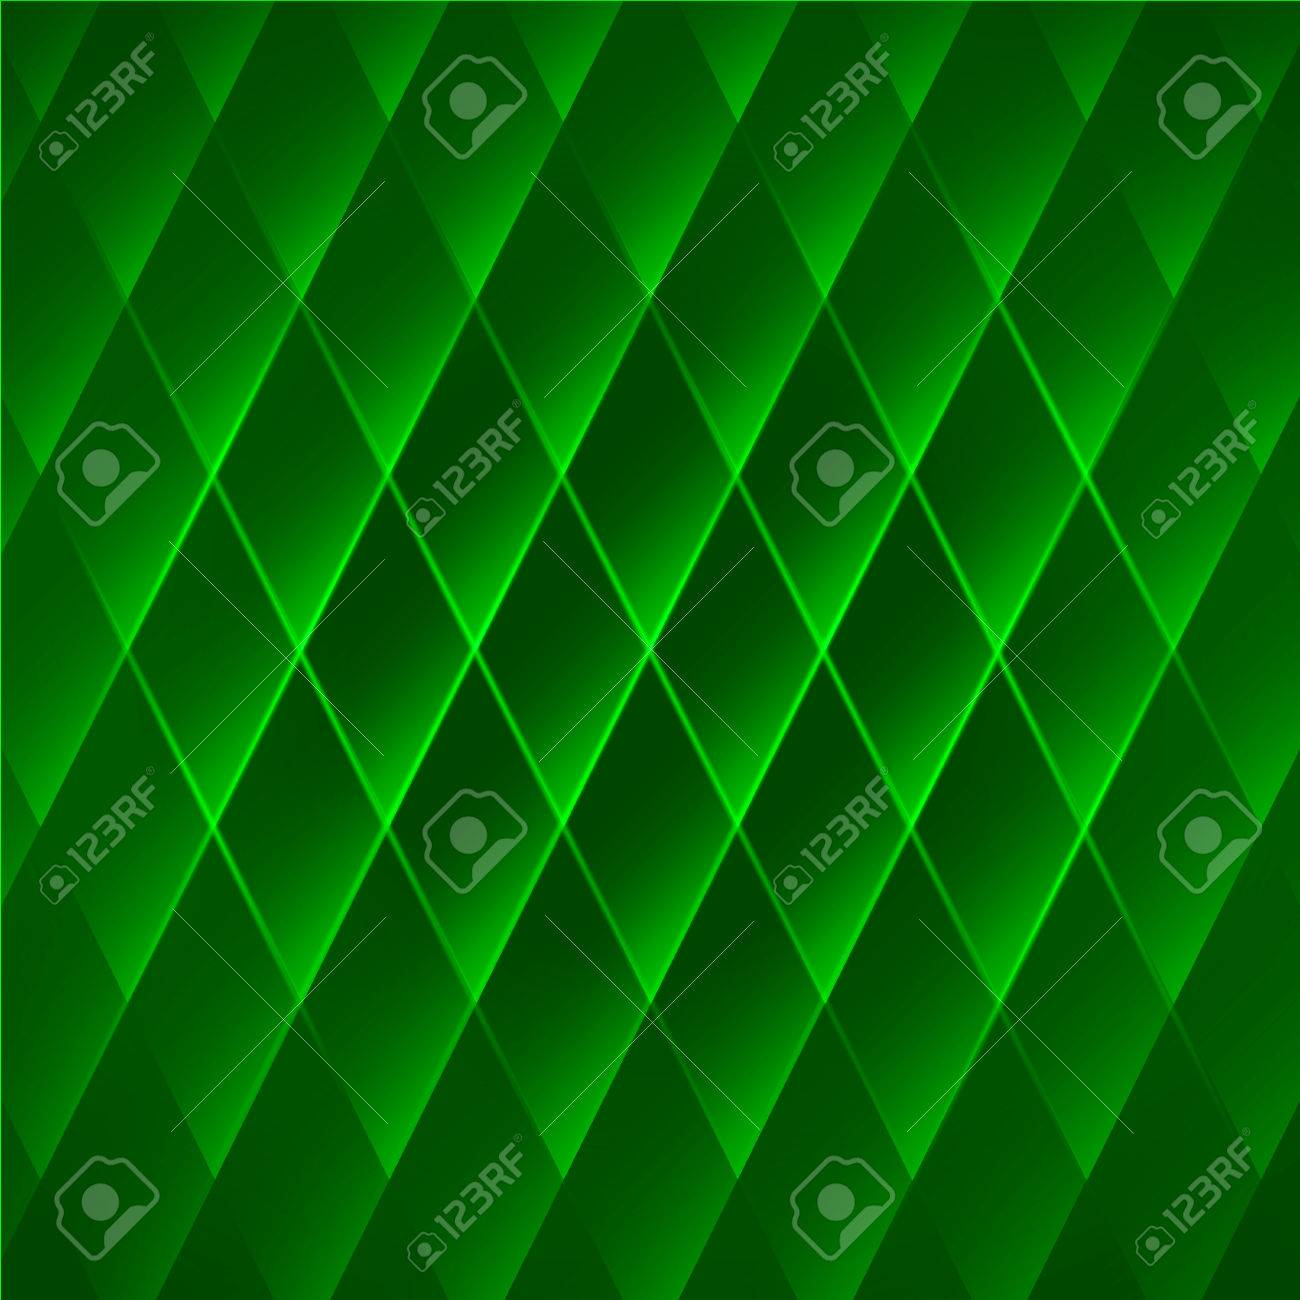 Abstract Green Geometric Background Bright Vector Emerald Wallpaper With Cells Stock